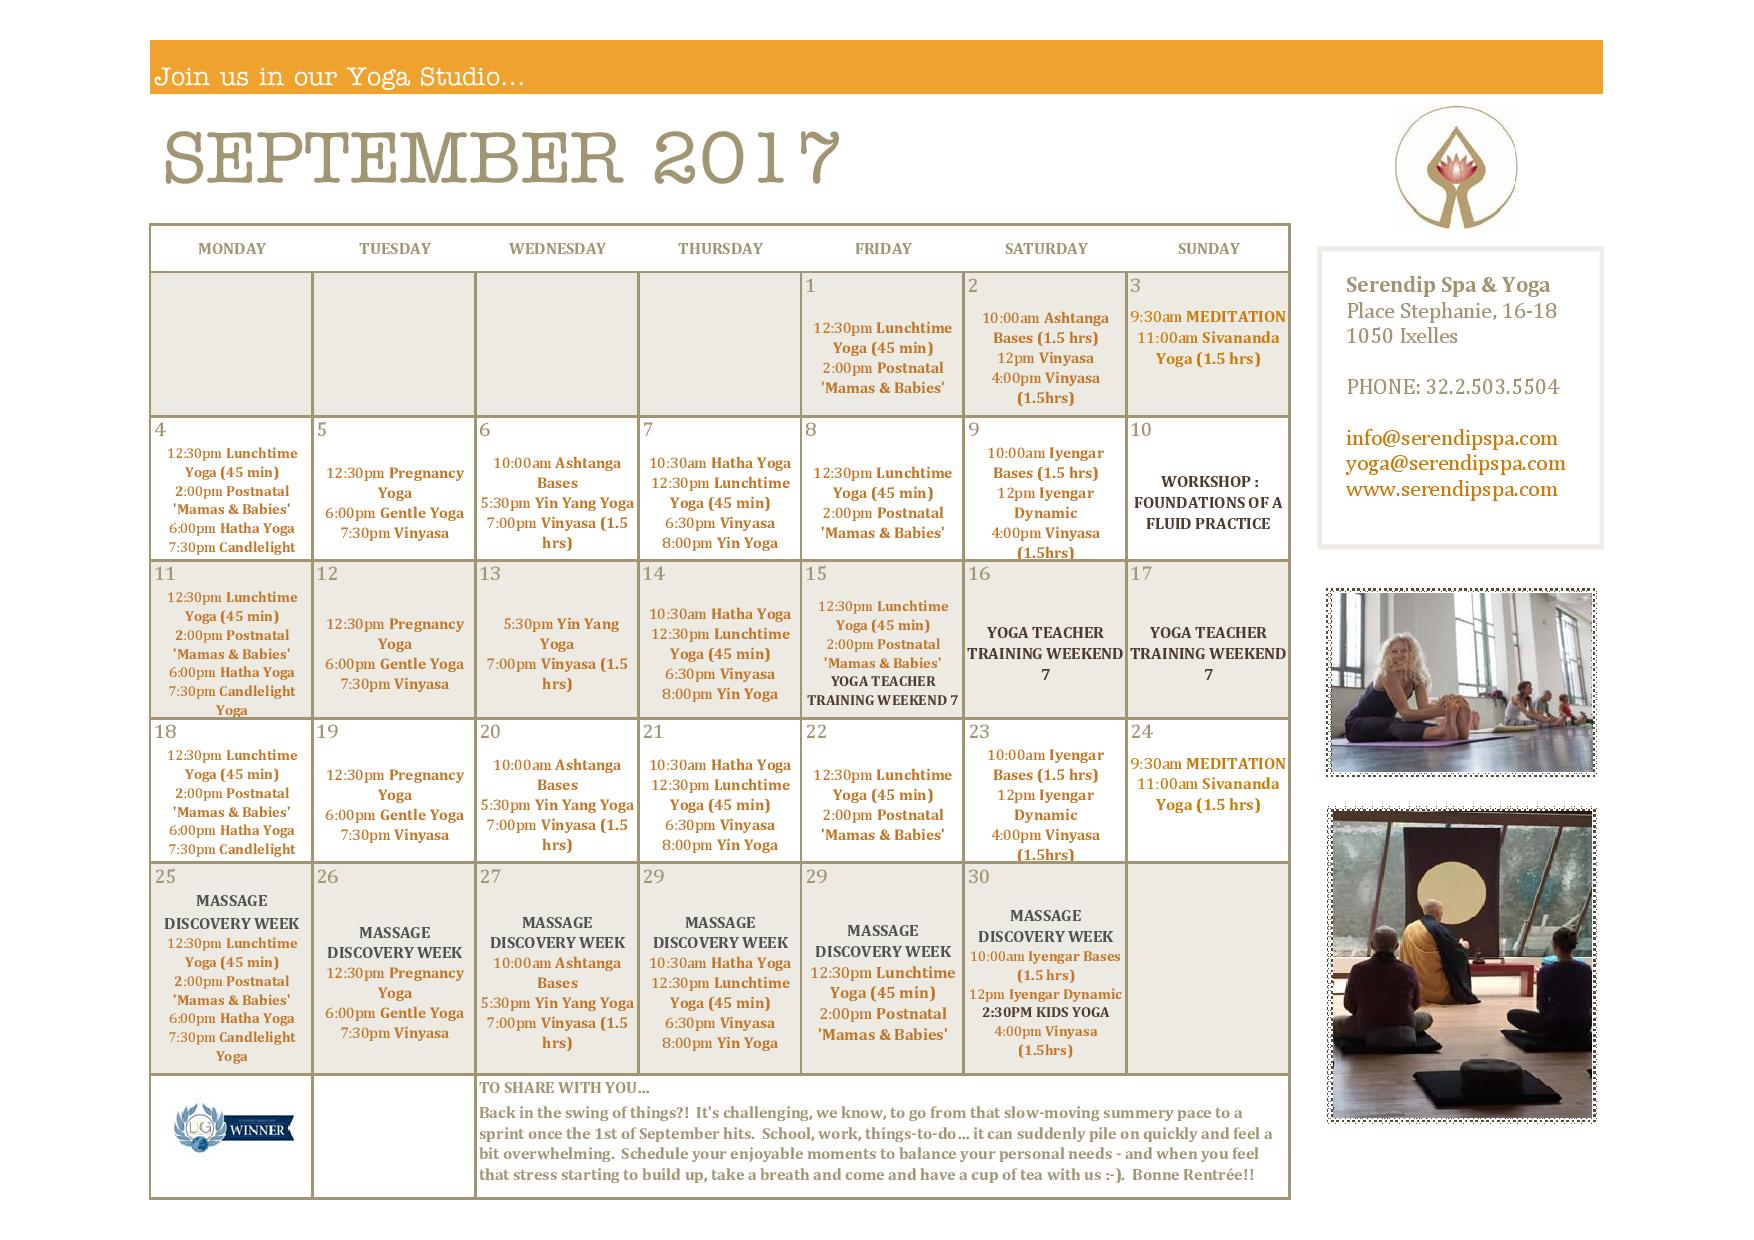 serendip spa and yoga calendar 2017_September A4 FRONT-page-001.jpg